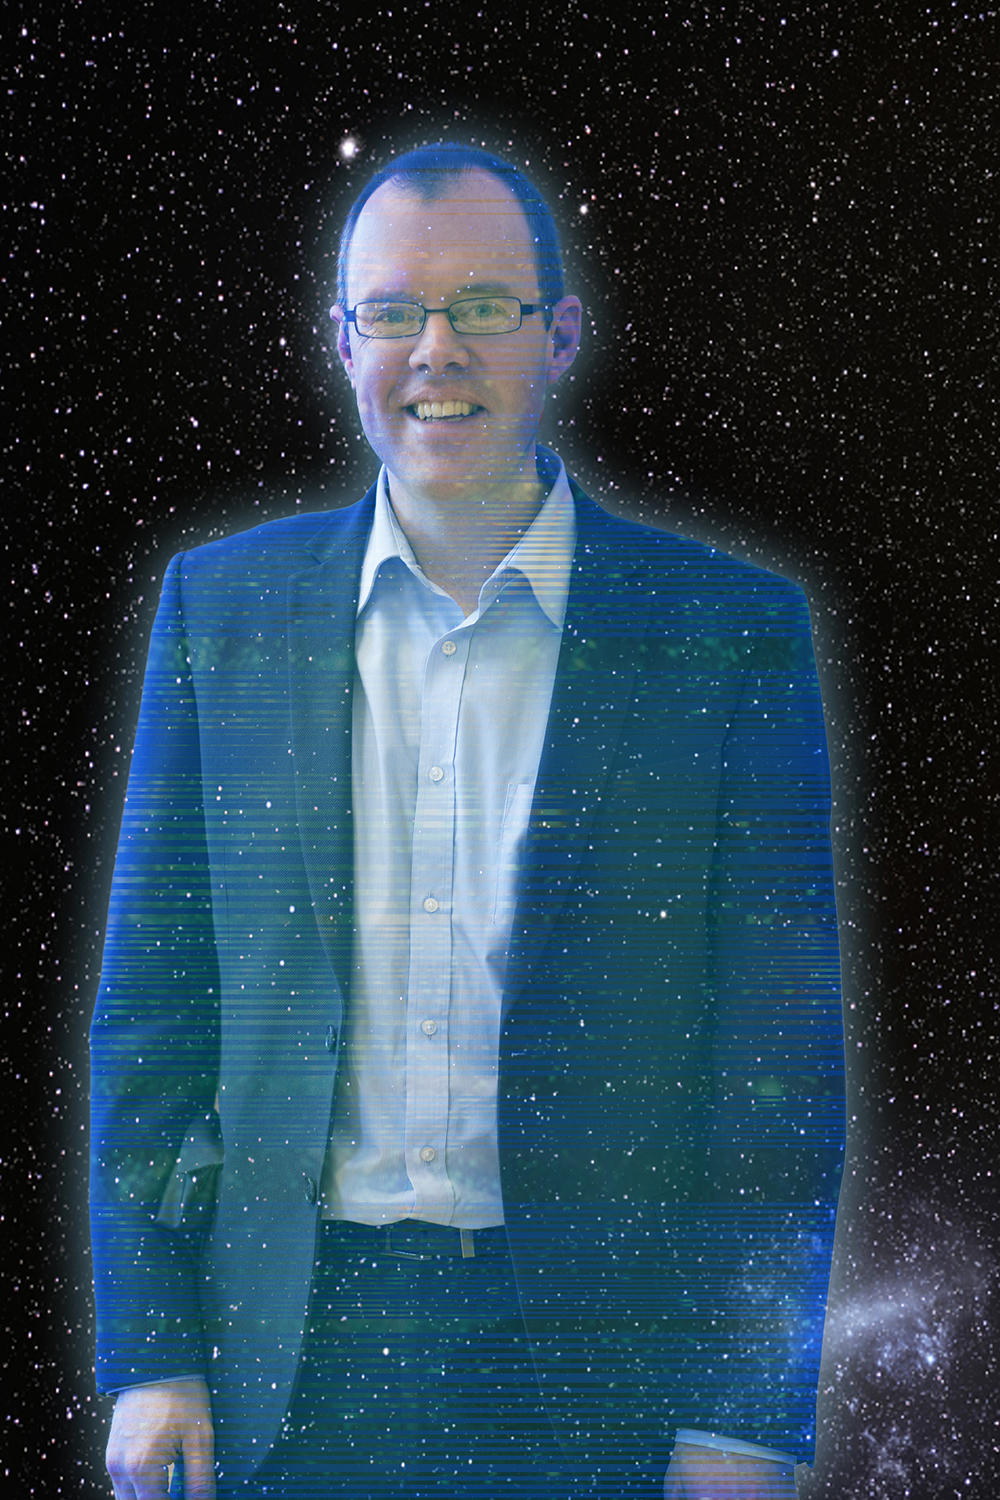 Green Party candidate James Burn as a Force Ghost because, well, er, it's environmentally friendly